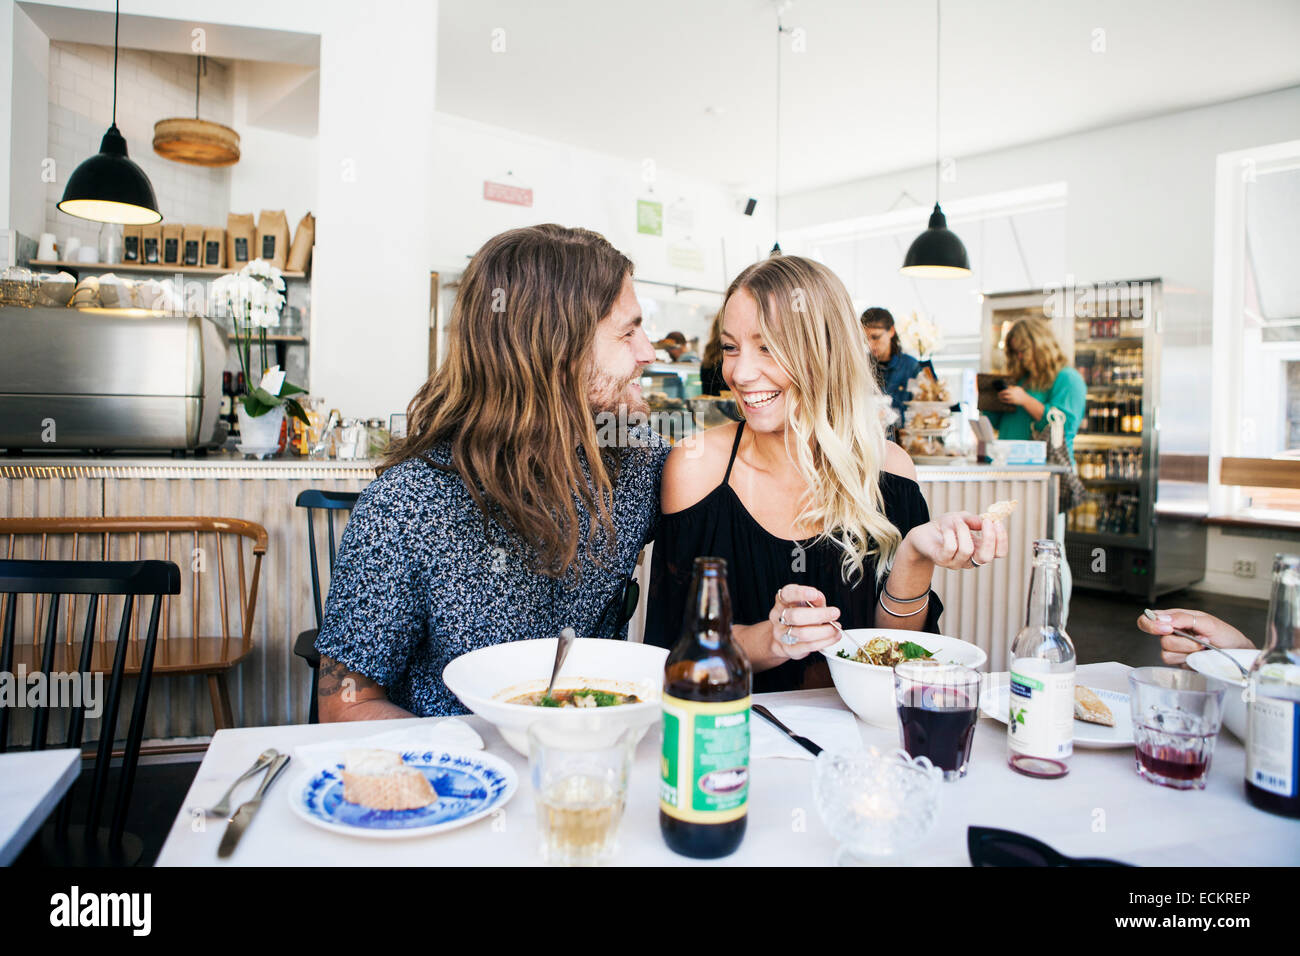 Happy couple talking while having food at restaurant table - Stock Image